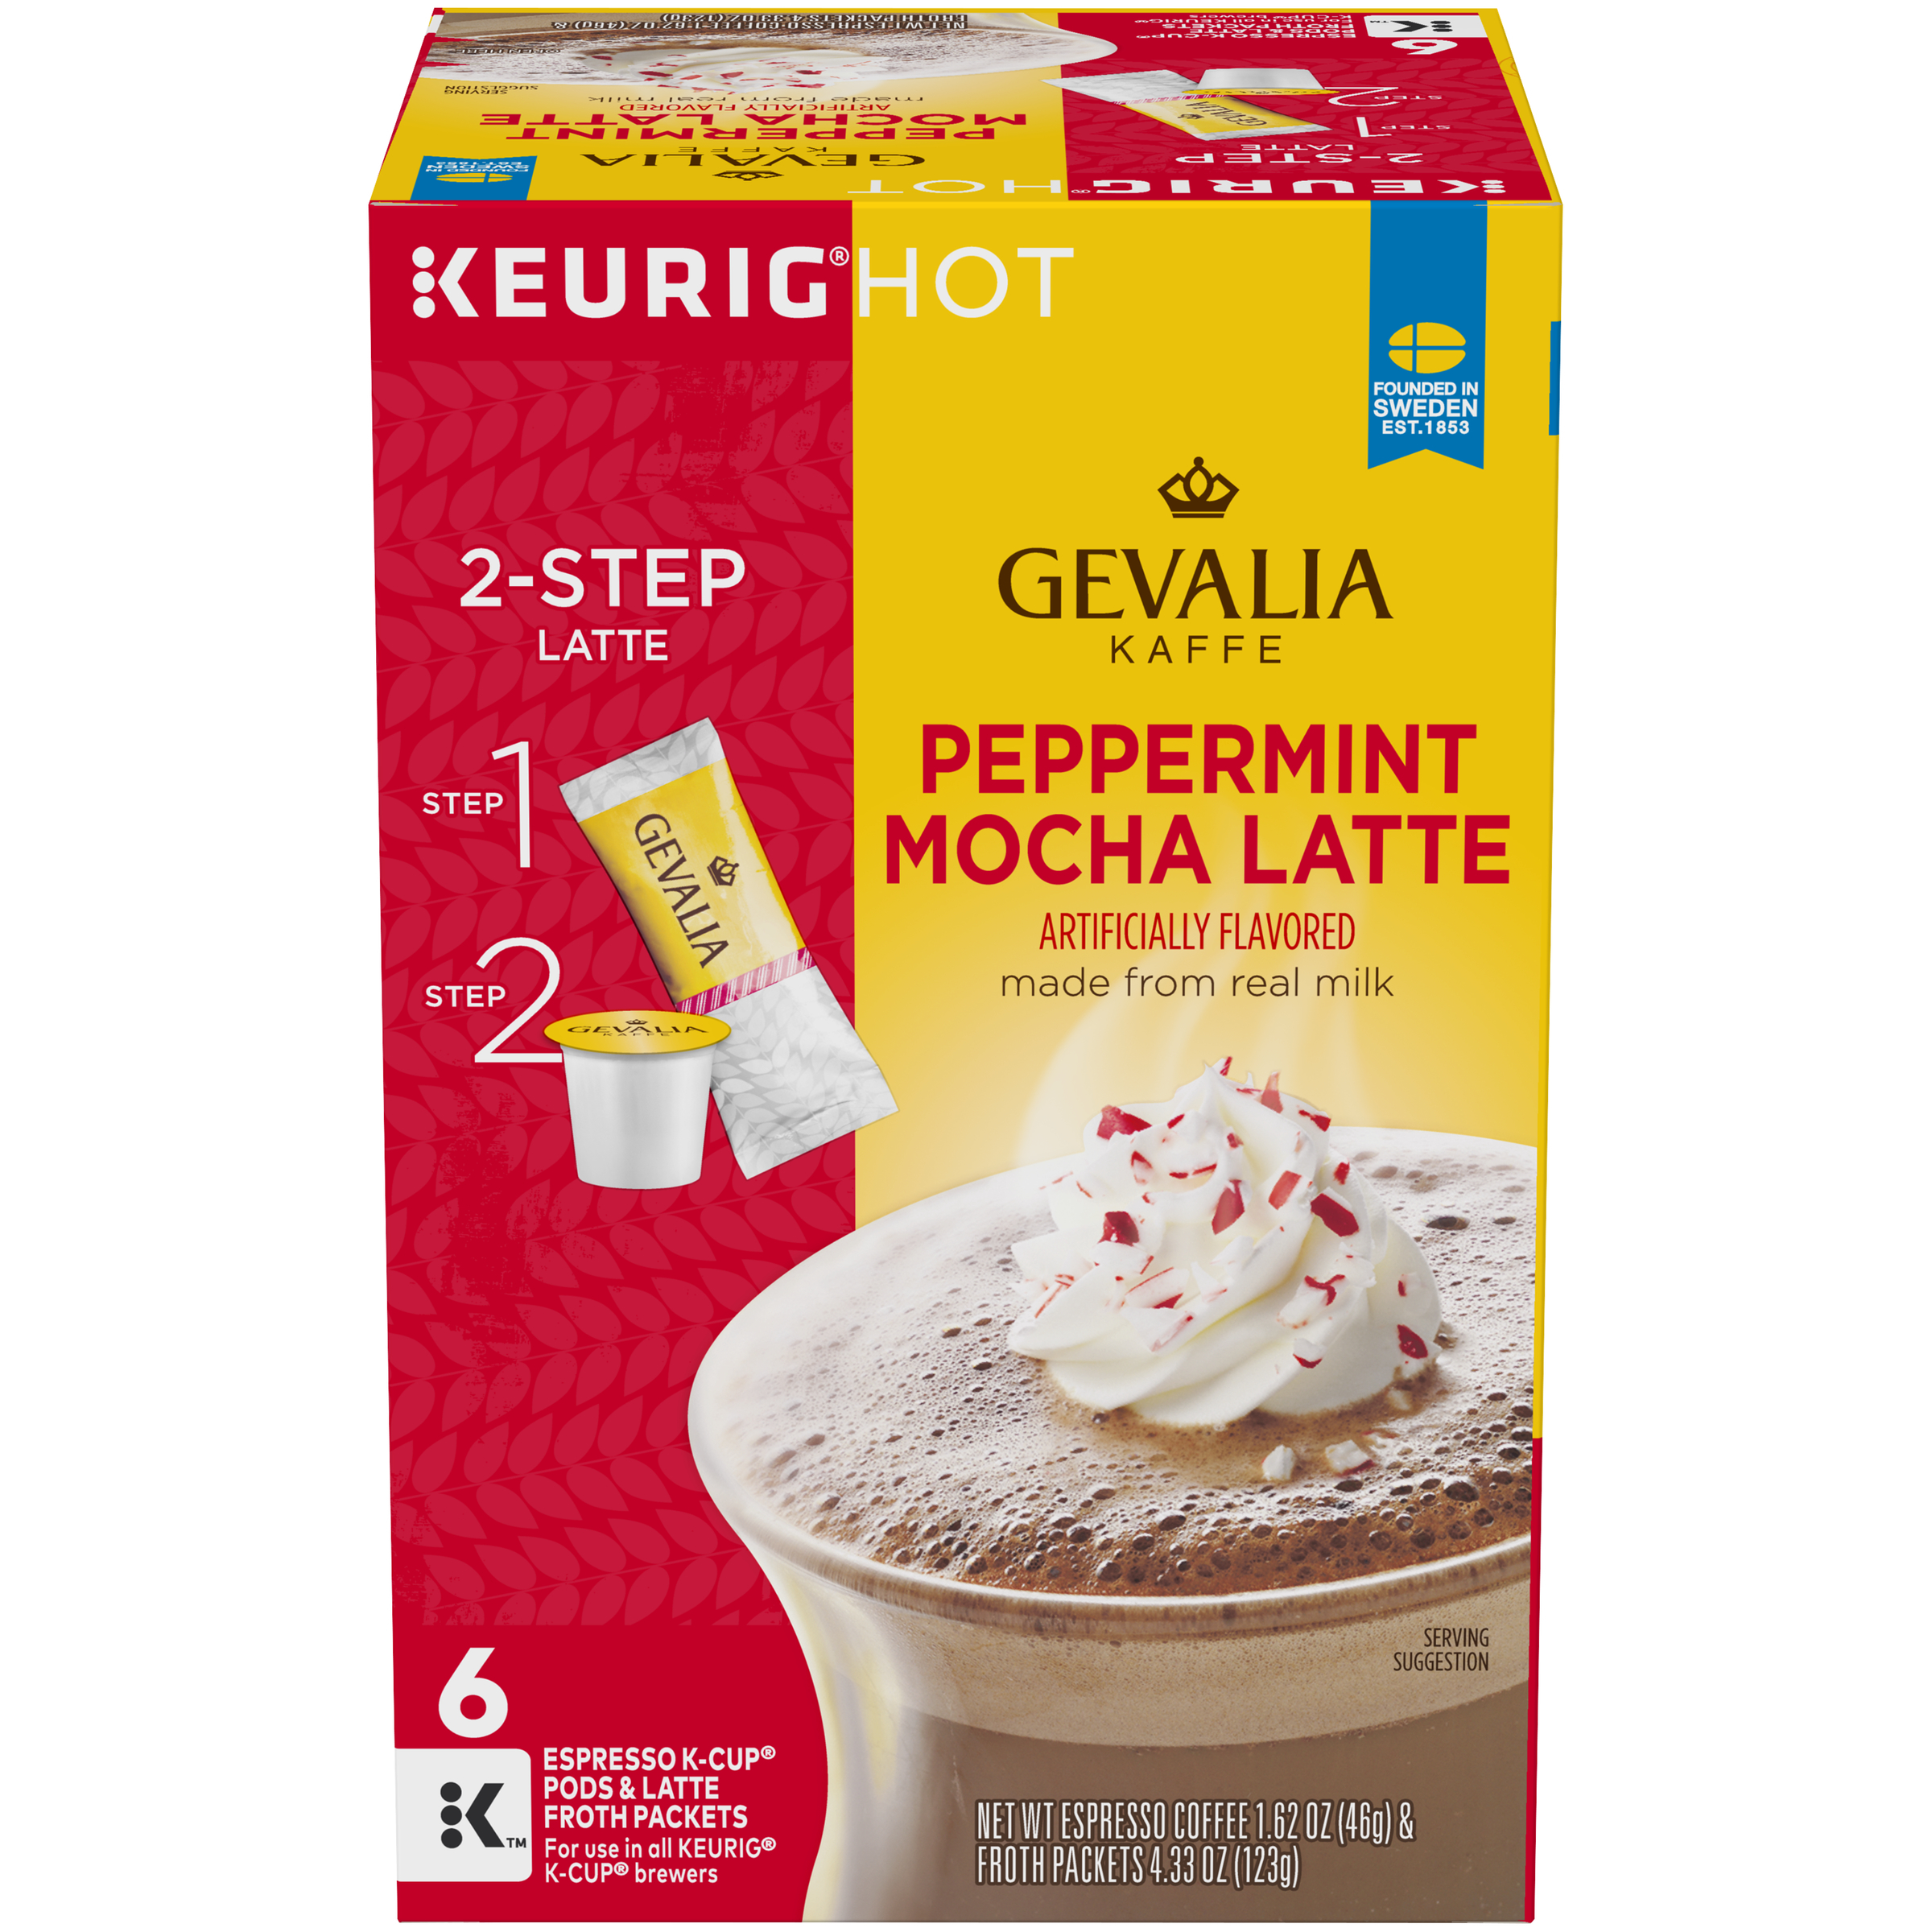 Gevalia Peppermint Mocha Latte Espresso K-Cup Packs & Froth Packets